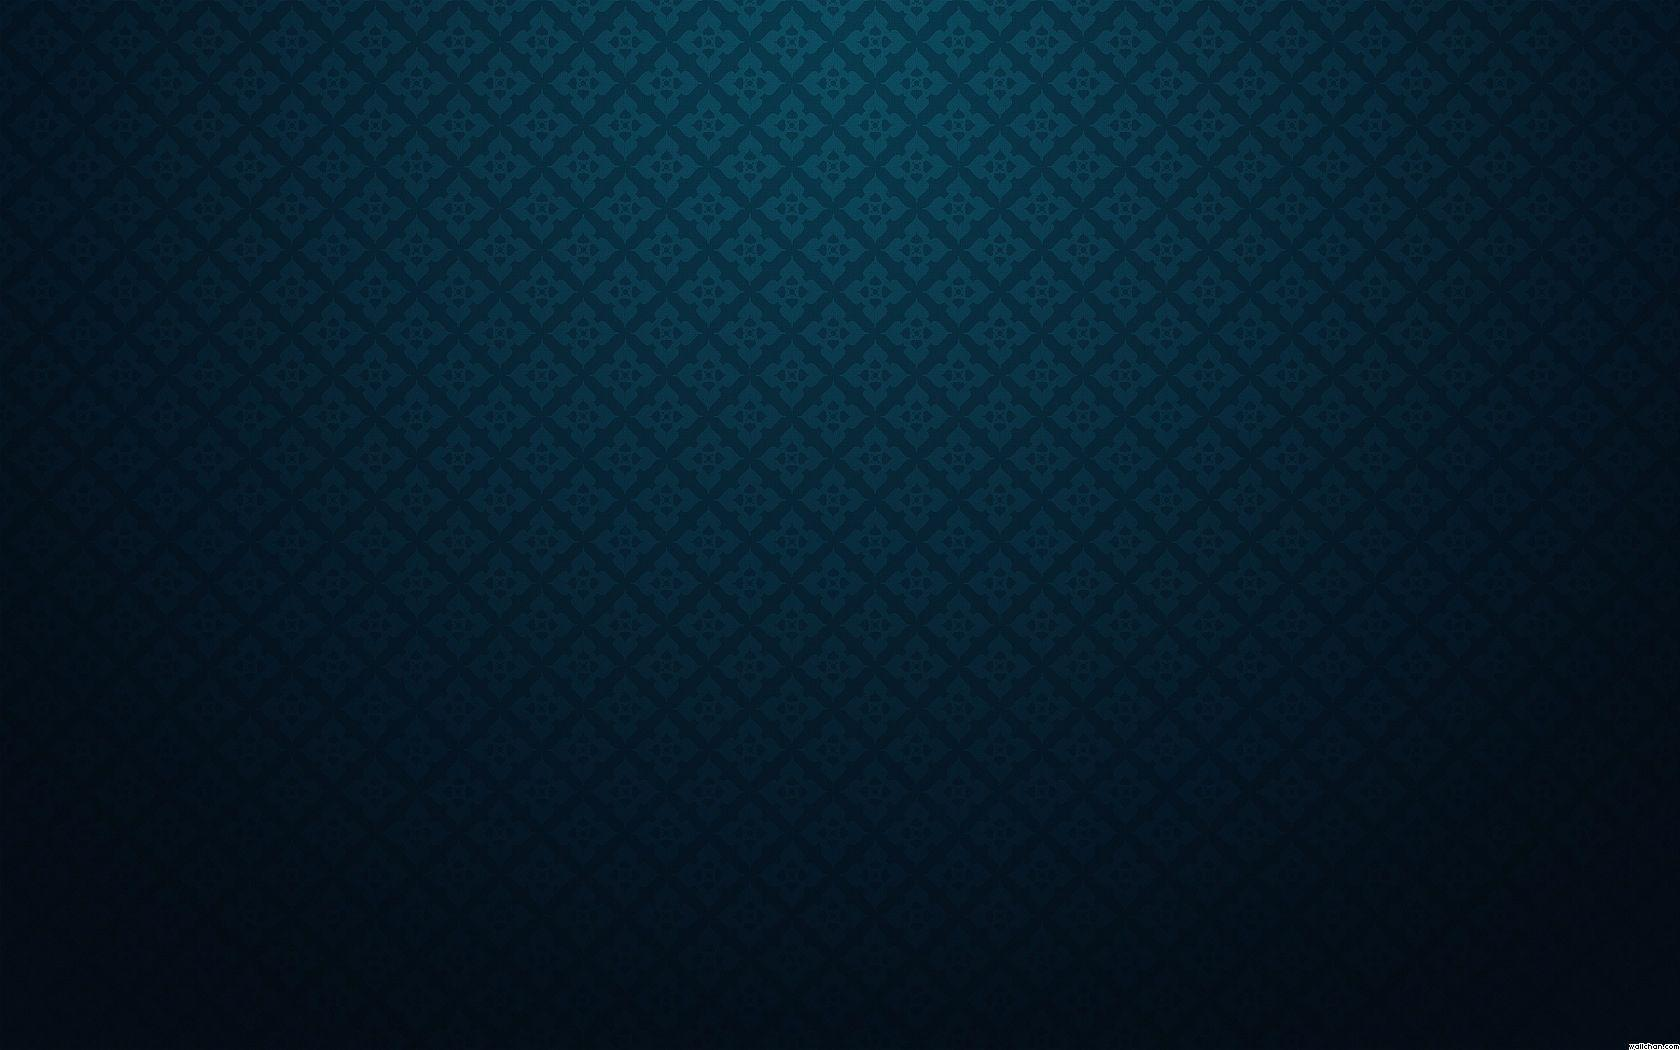 Dark Blue Background Images Wallpapertag: Dark Blue Wallpapers